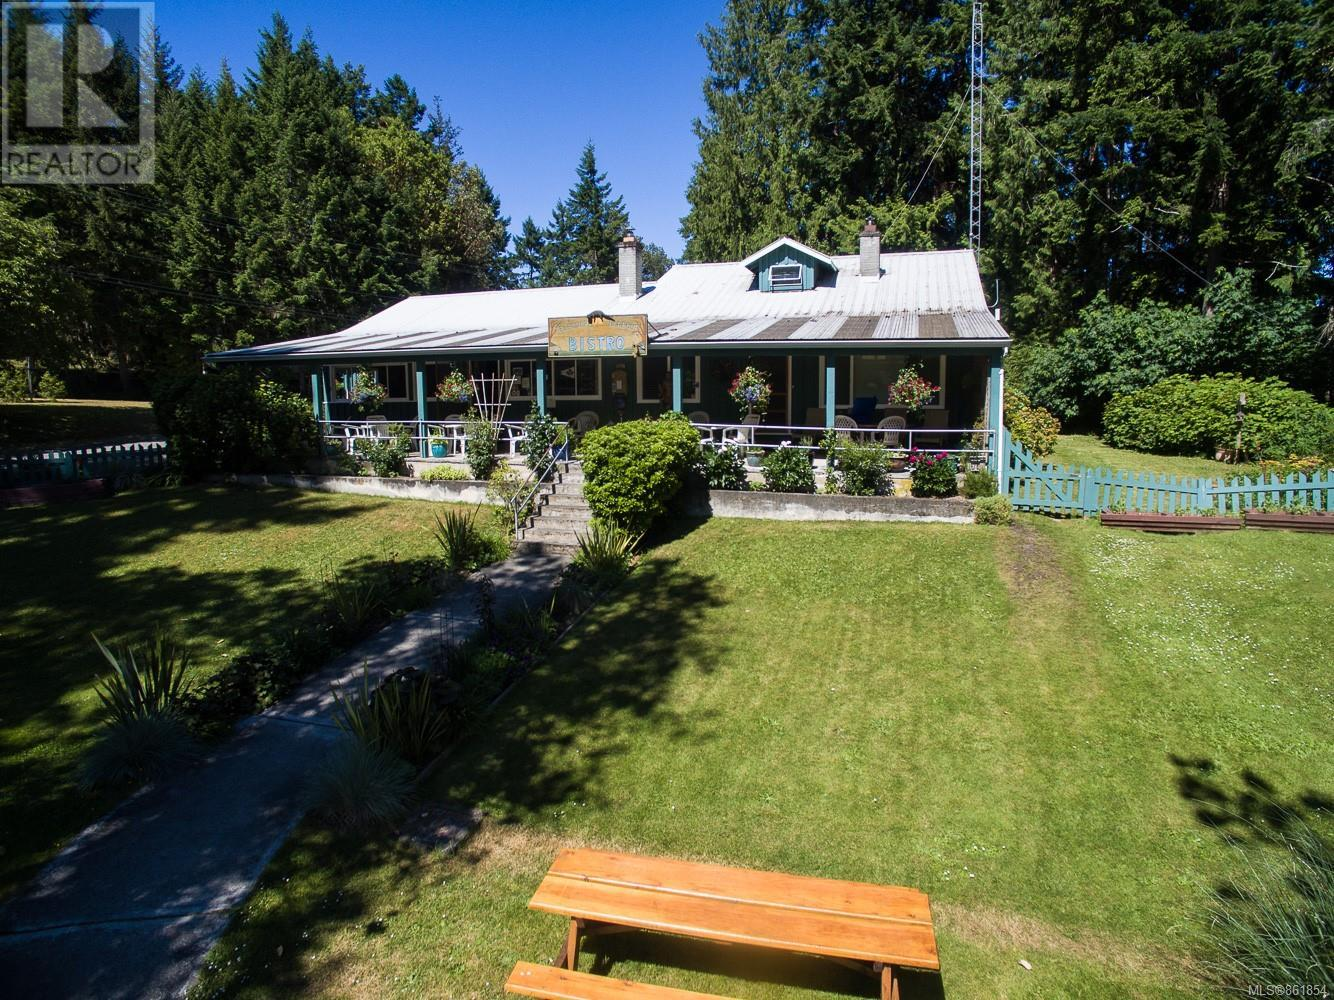 MLS® #861854 - Thetis Island Other For sale Image #6